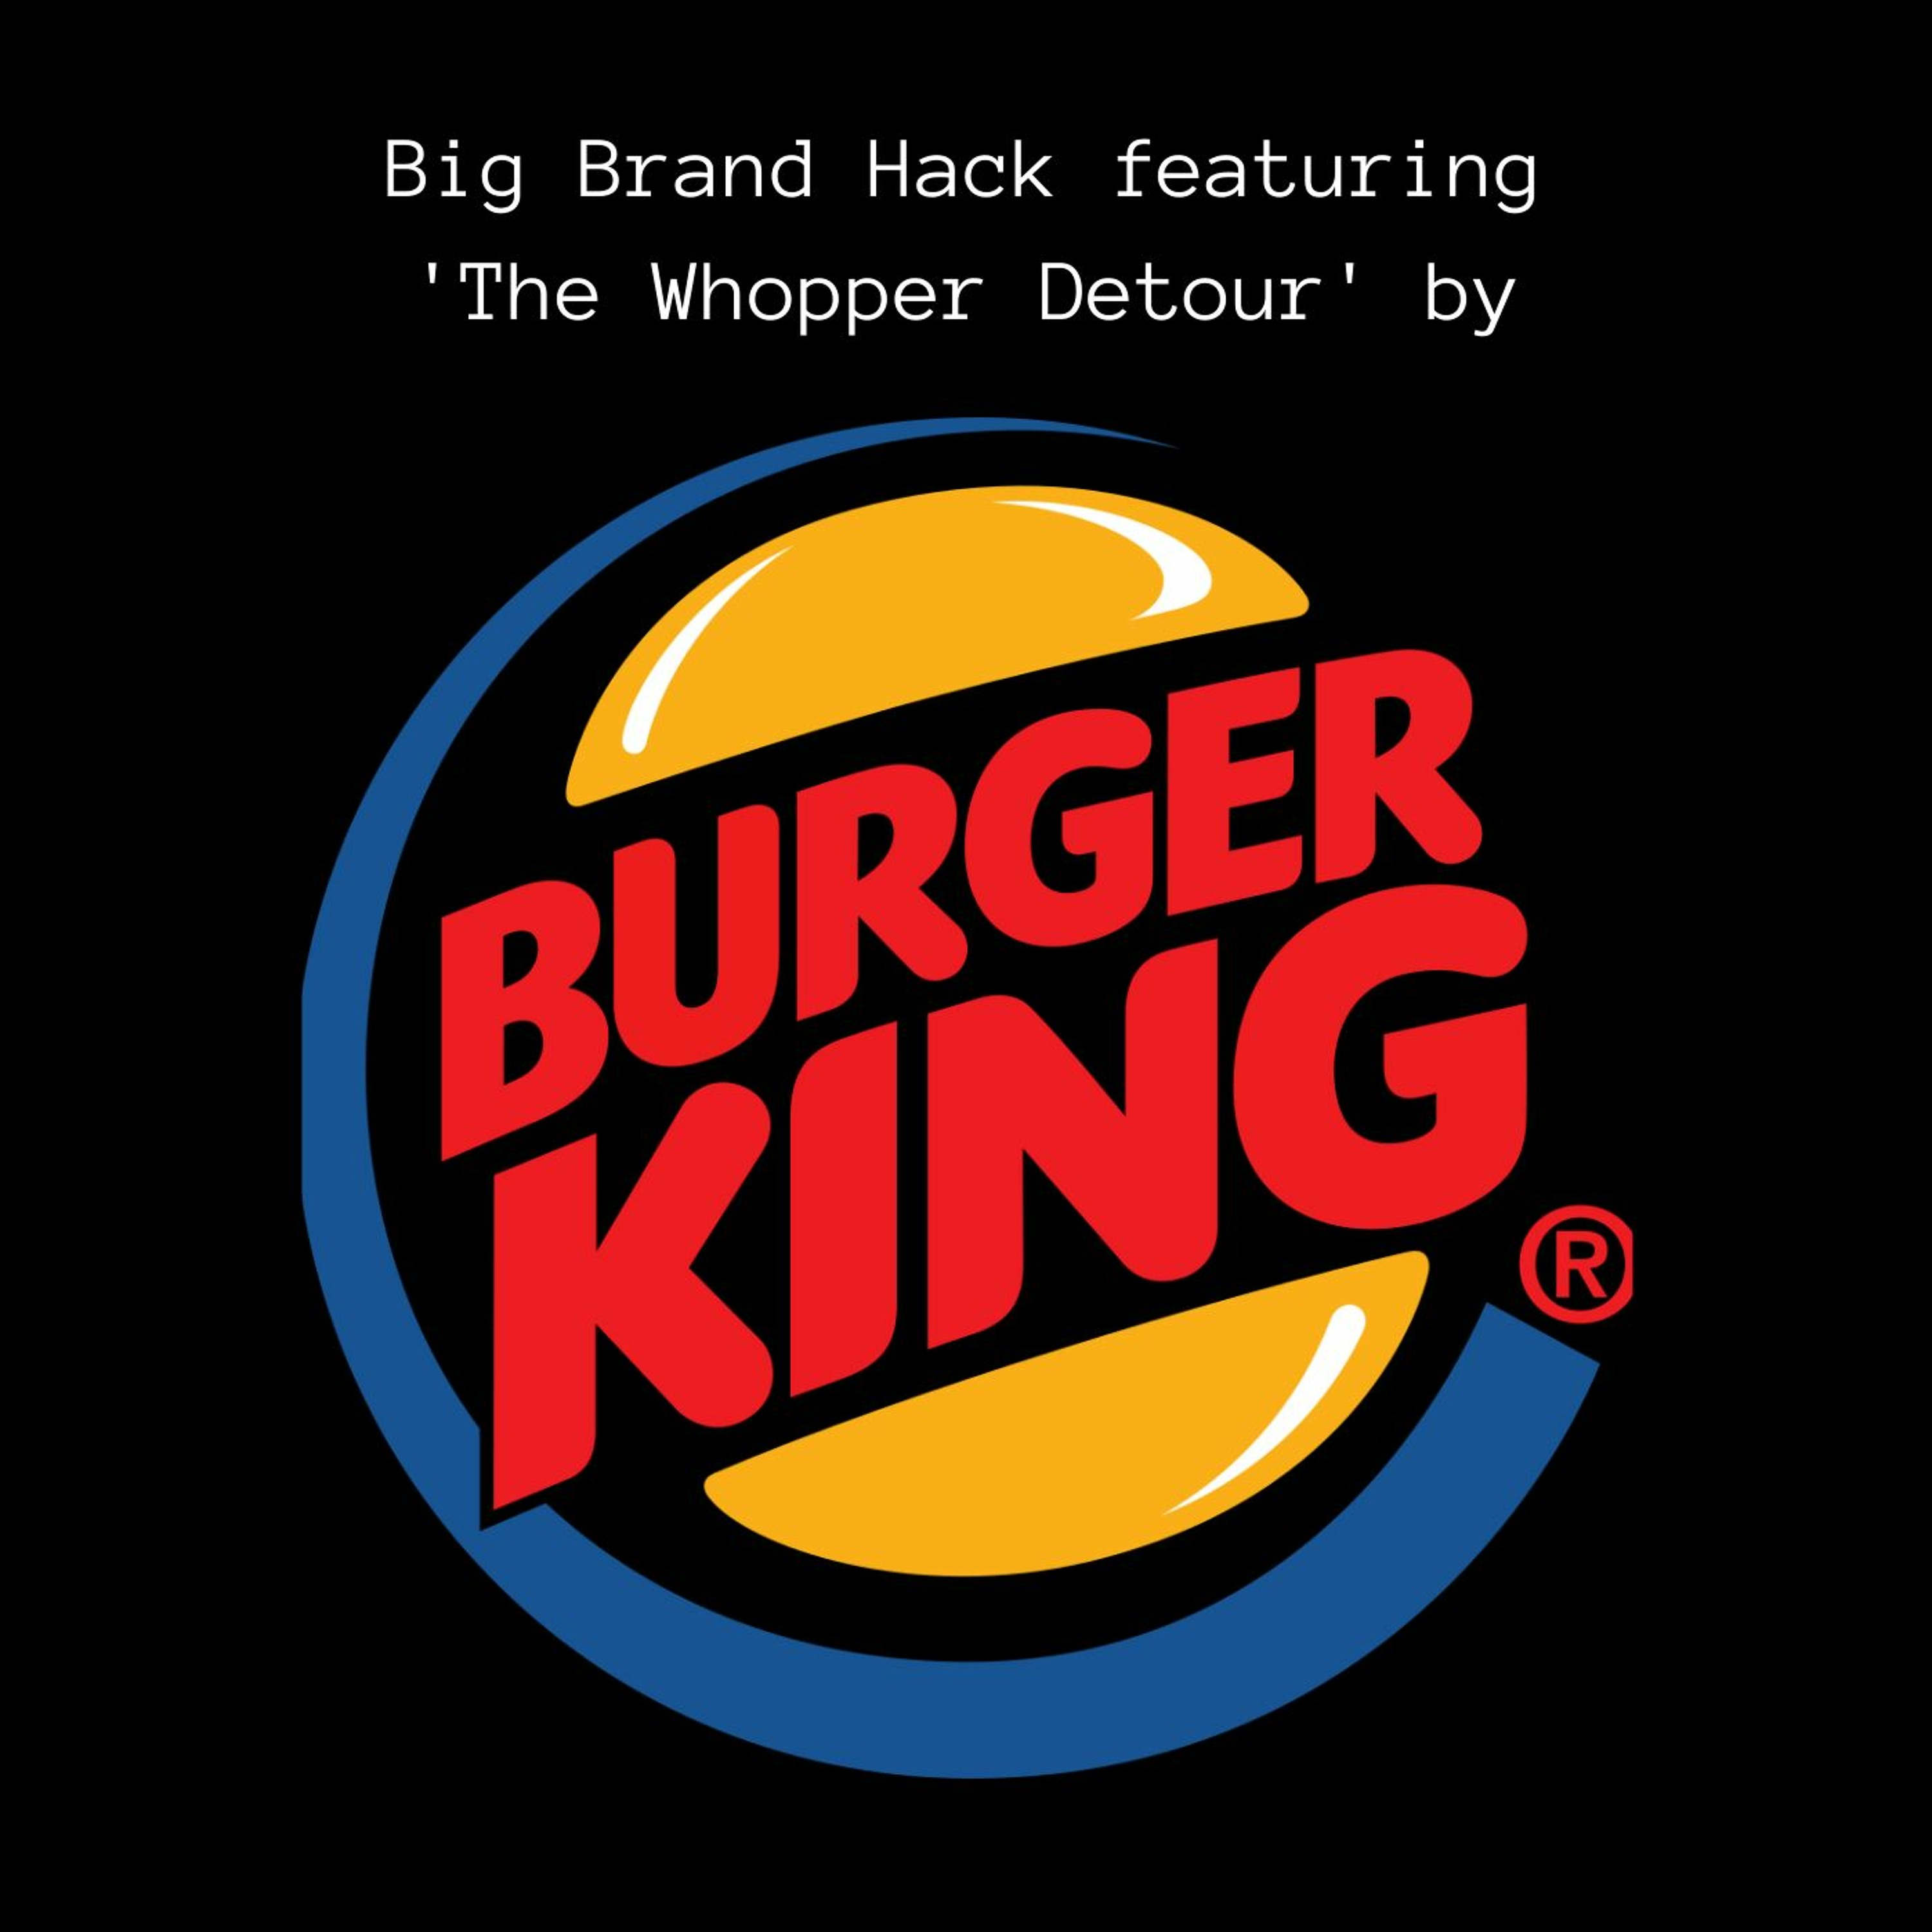 Episode Burger King – How to promote an app